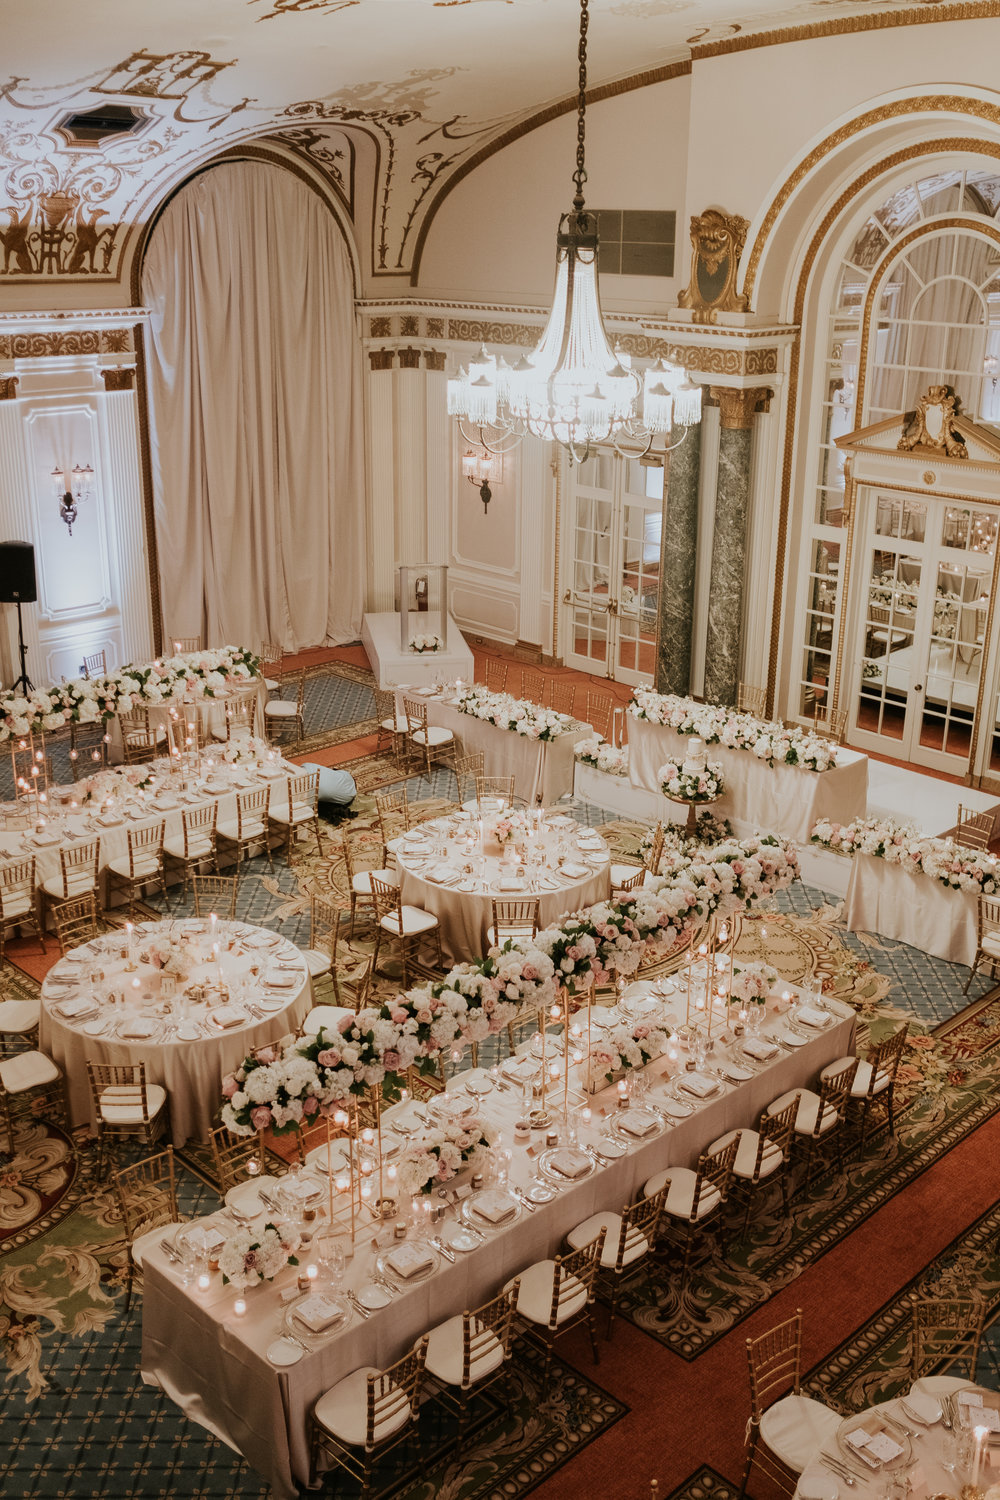 Komal Minhas Wedding Chateau Laurier, Toast Events